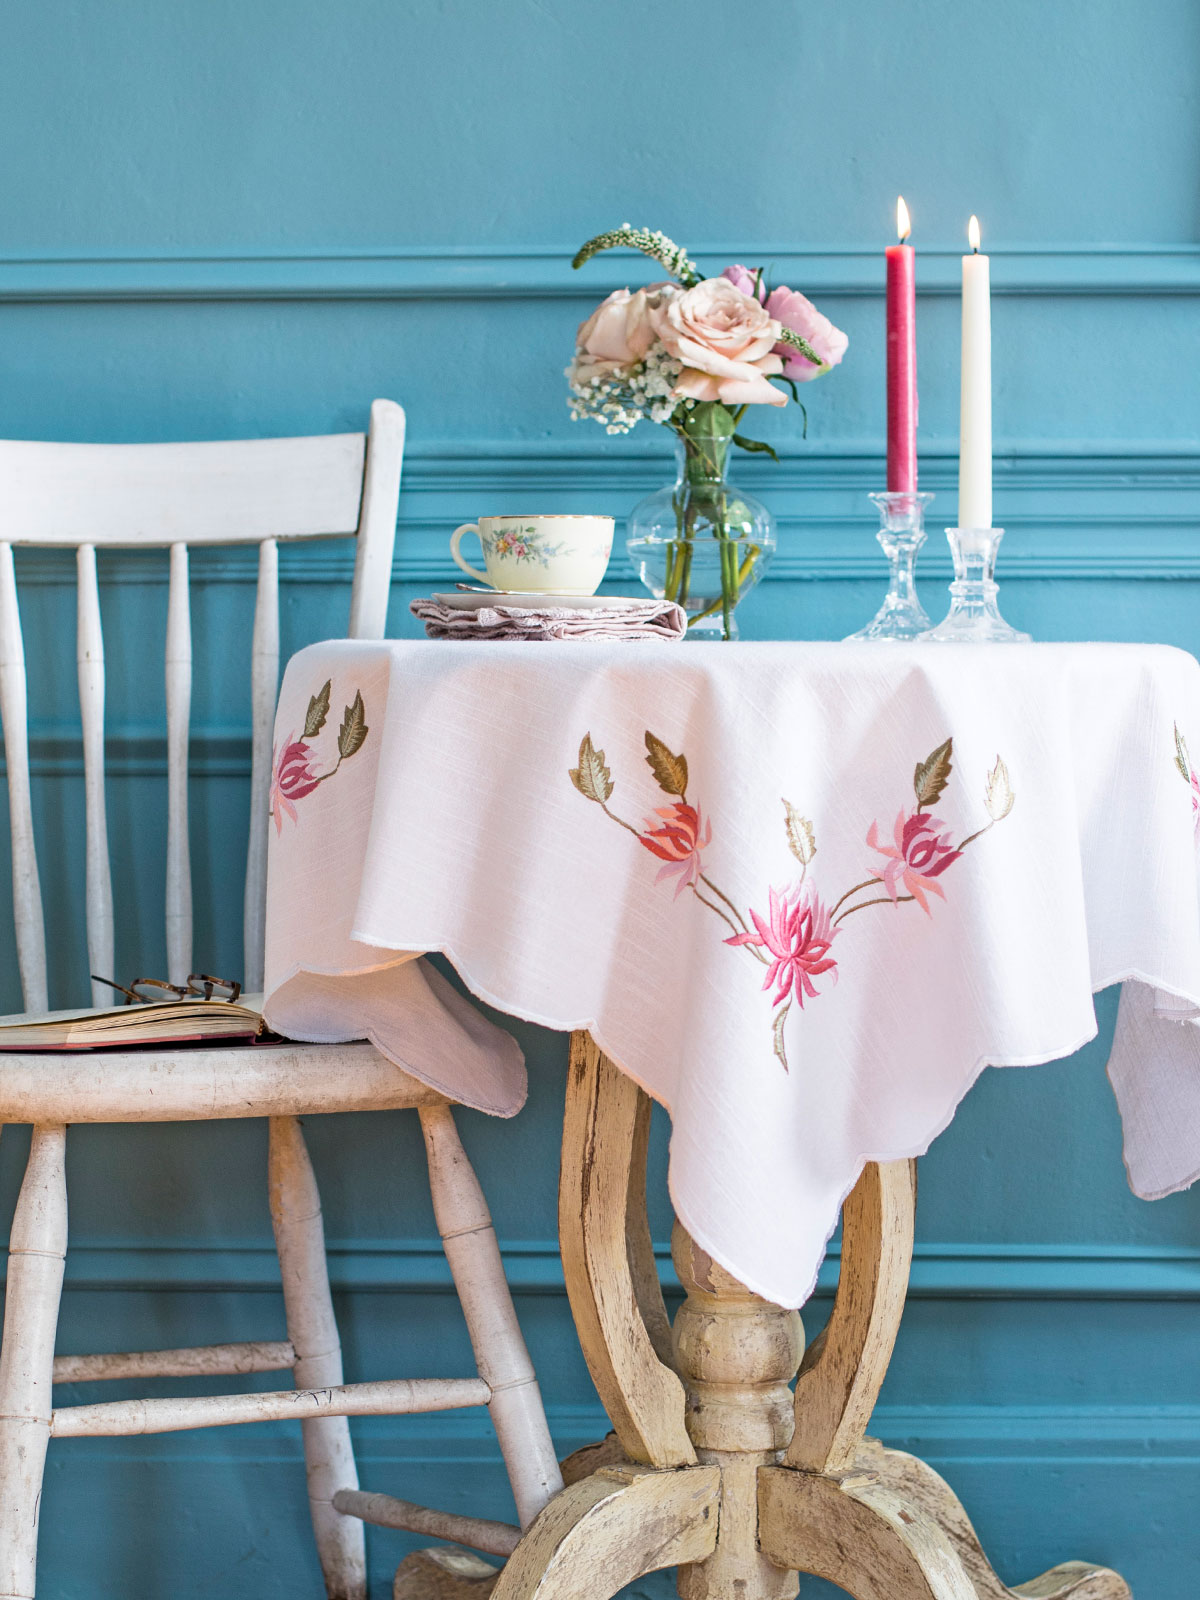 Embroidered tablecloth in Vintage Charm.